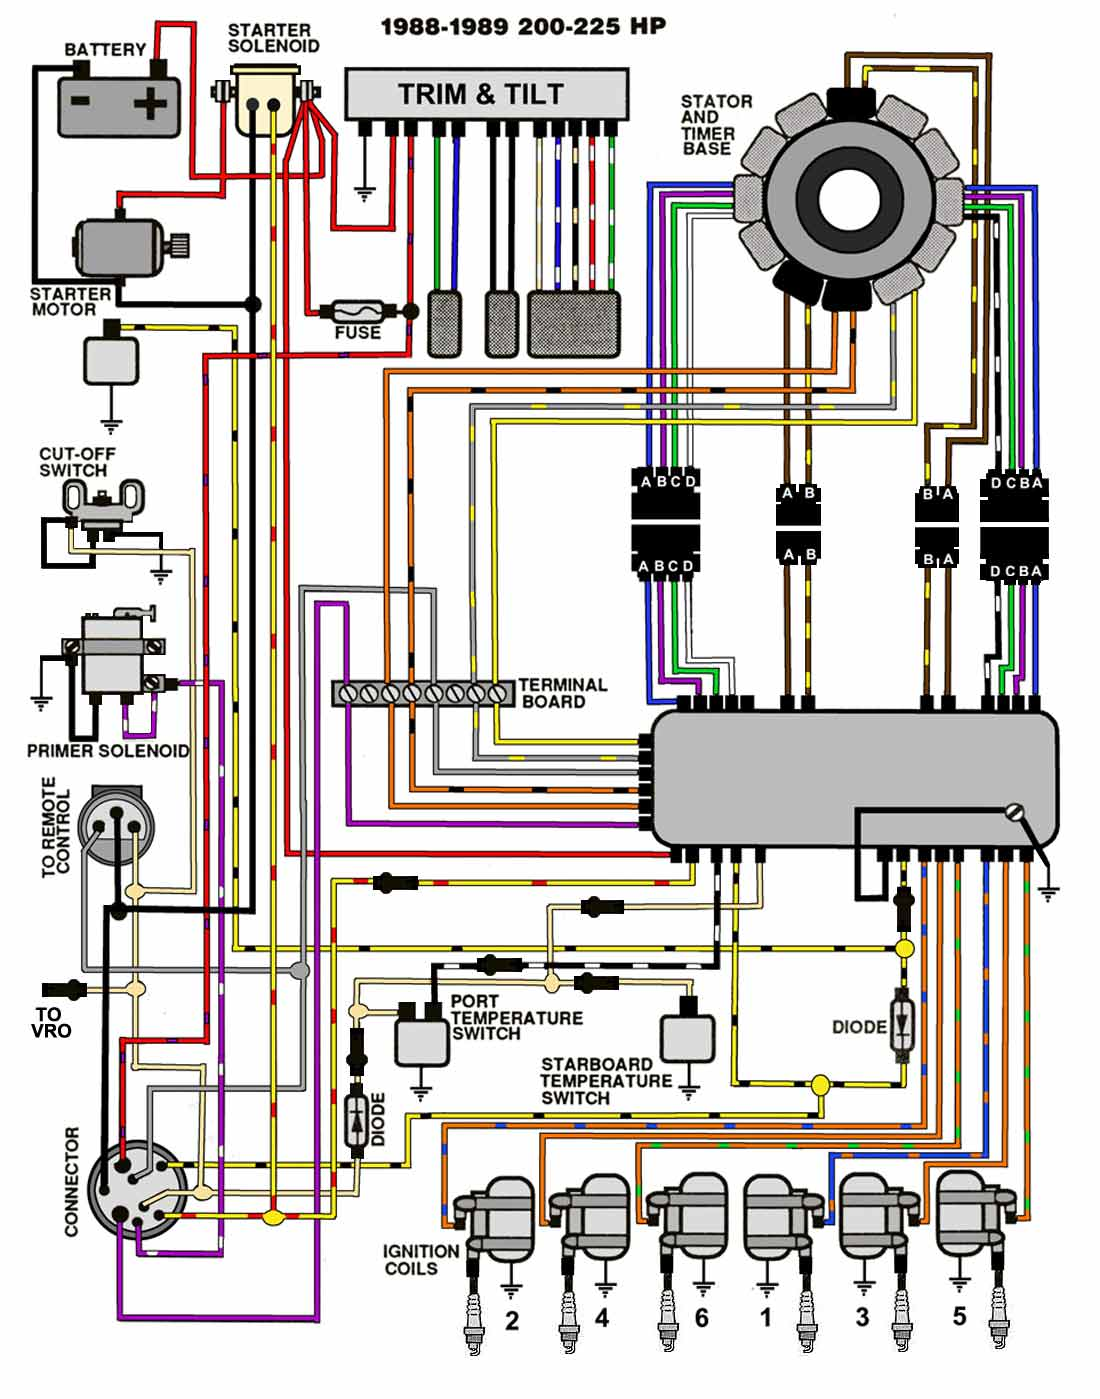 1988_89_200_225 evinrude ignition wiring diagram evinrude 40 hp outboard diagrams 35 Evinrude Wiring Diagram at suagrazia.org